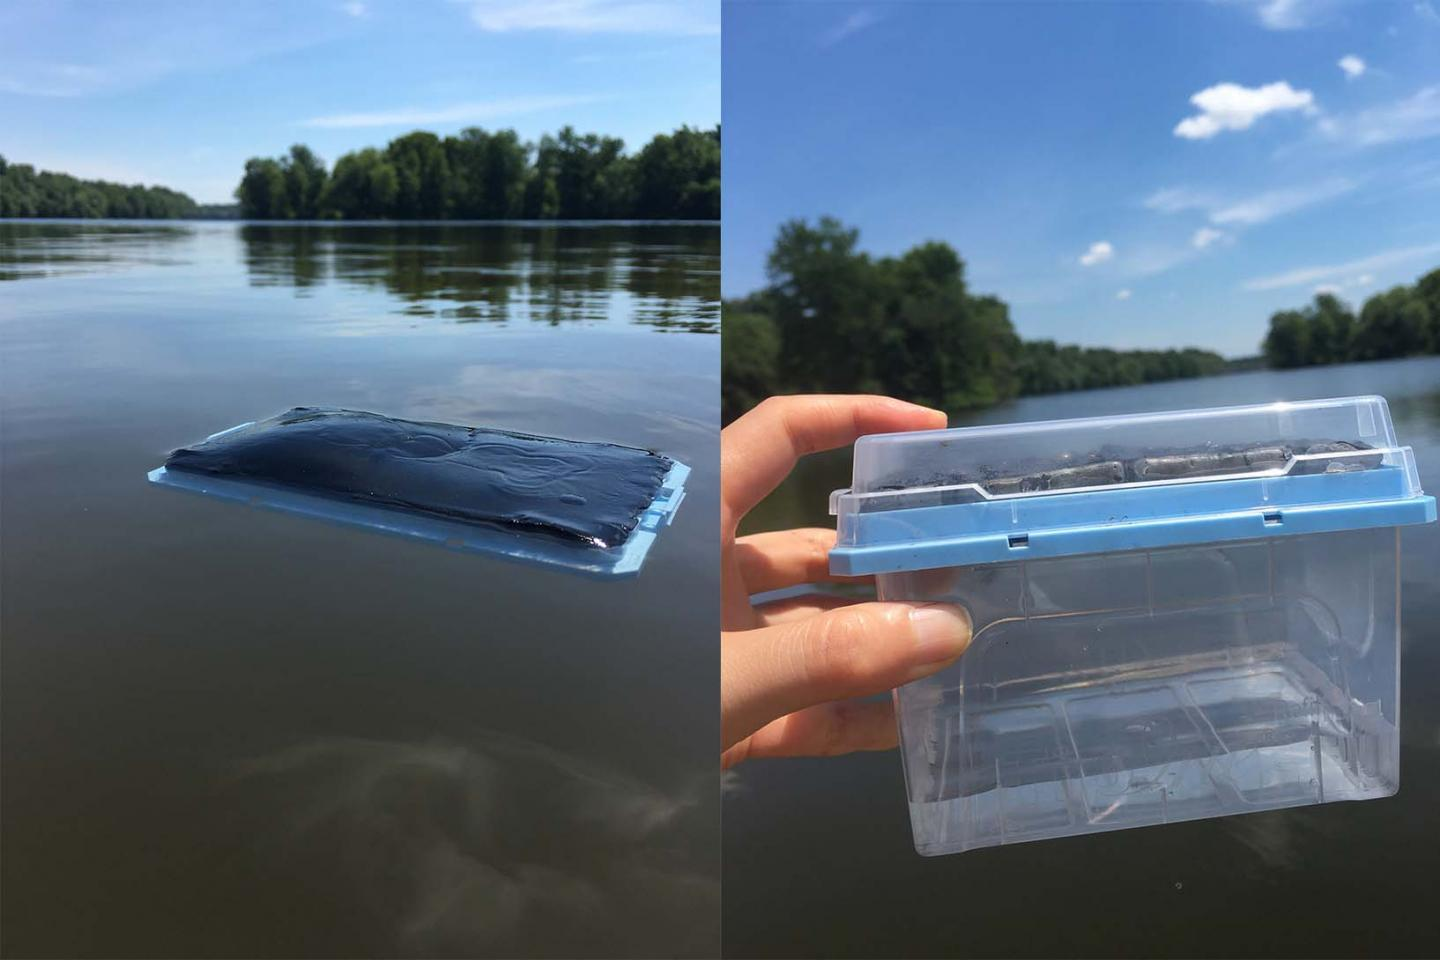 After floating in a lake for an hour, the device discharges drinkable water when heated by sunlight